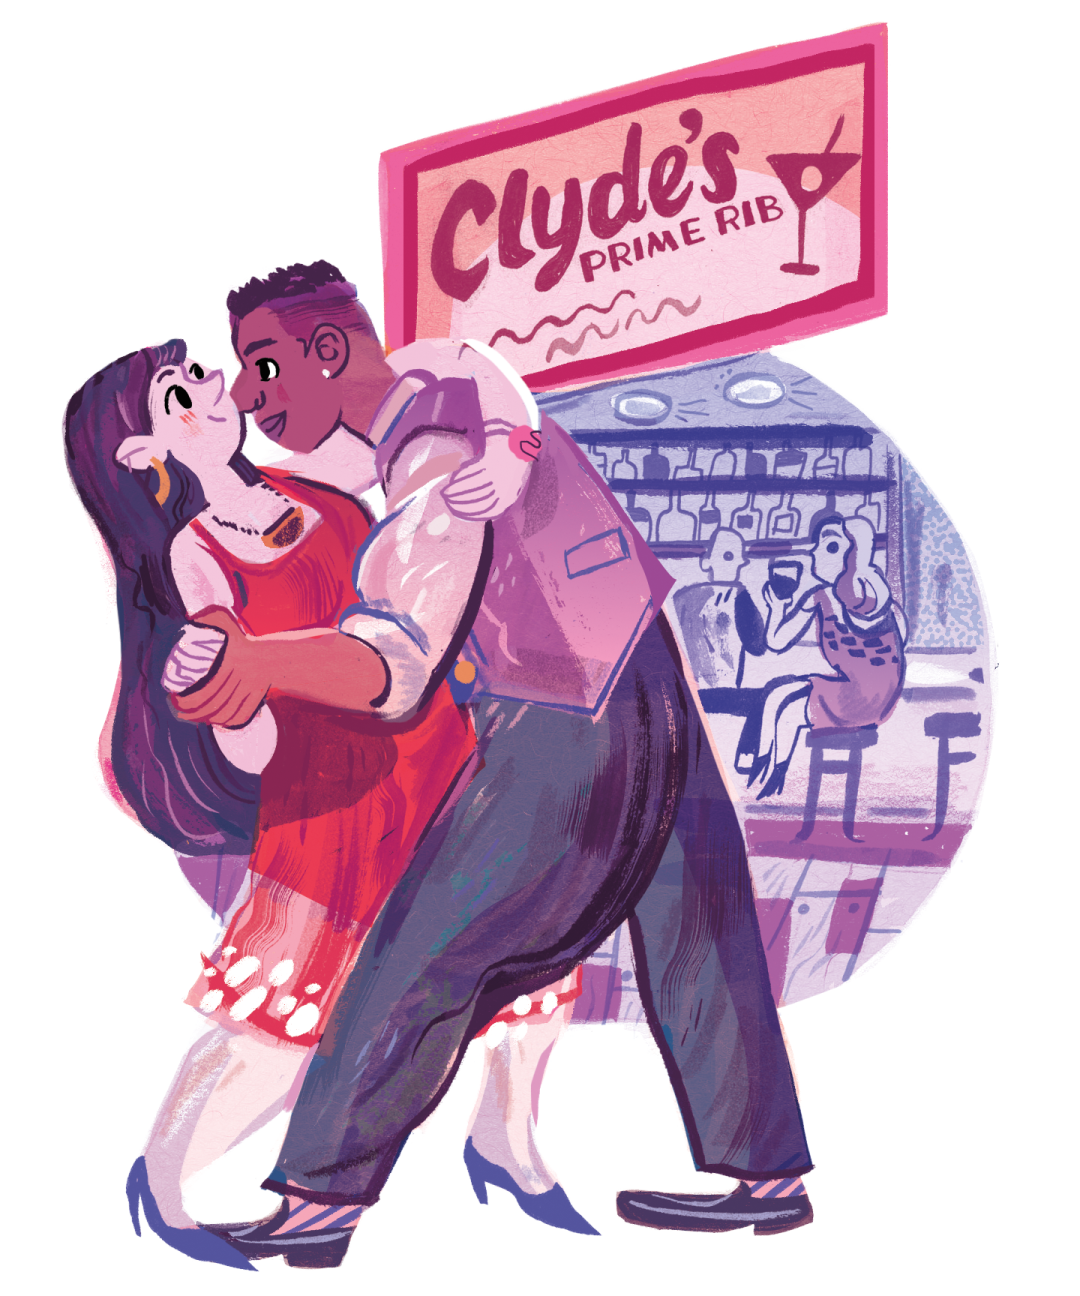 0218 dates romantic clyde s d03dqp